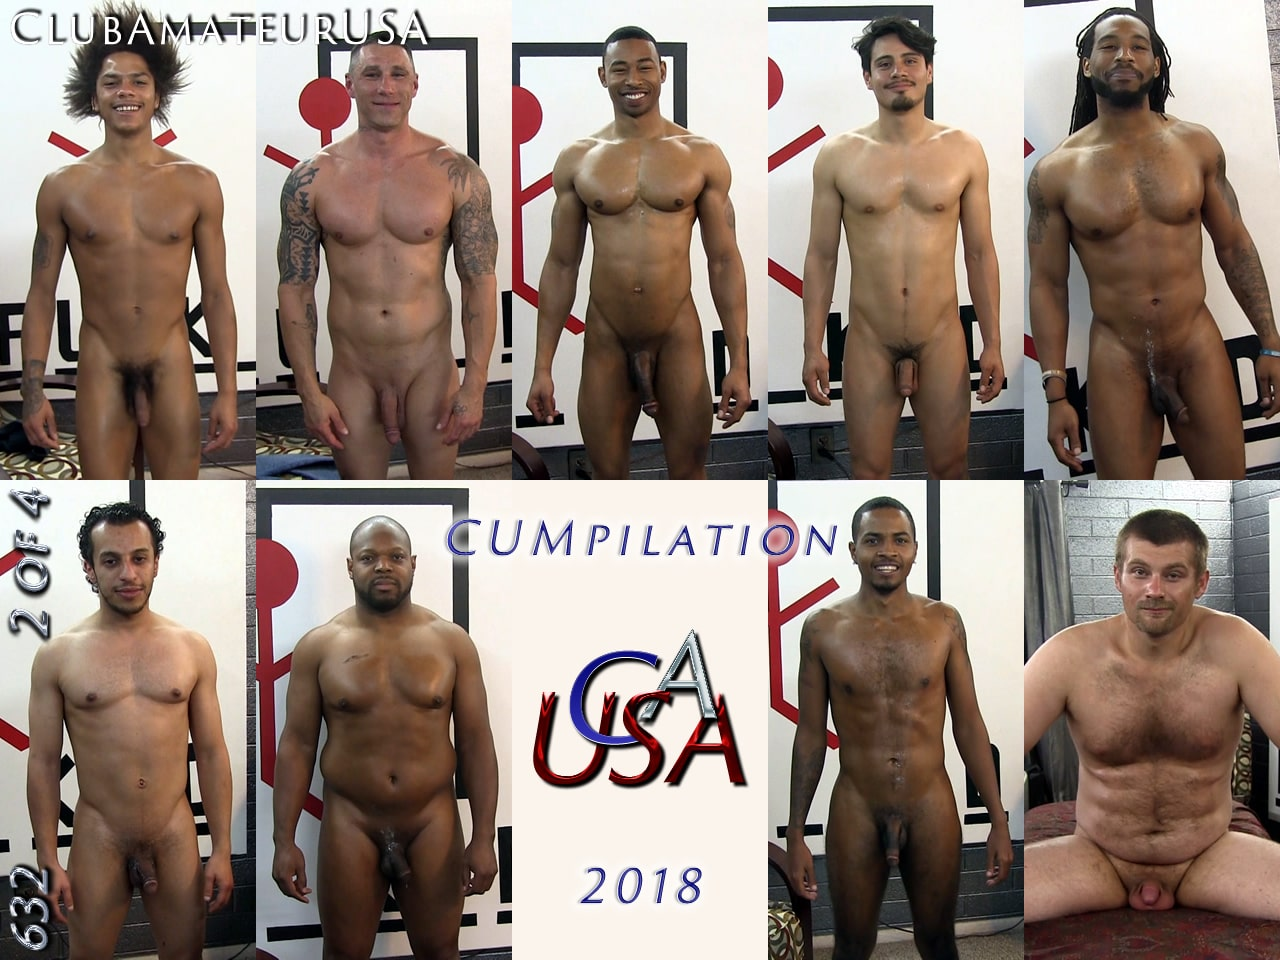 CUMpilation 2018 - 2 of 4 - ClubAmateurUSA video download 3gp allie sin pigtails round asses porntube